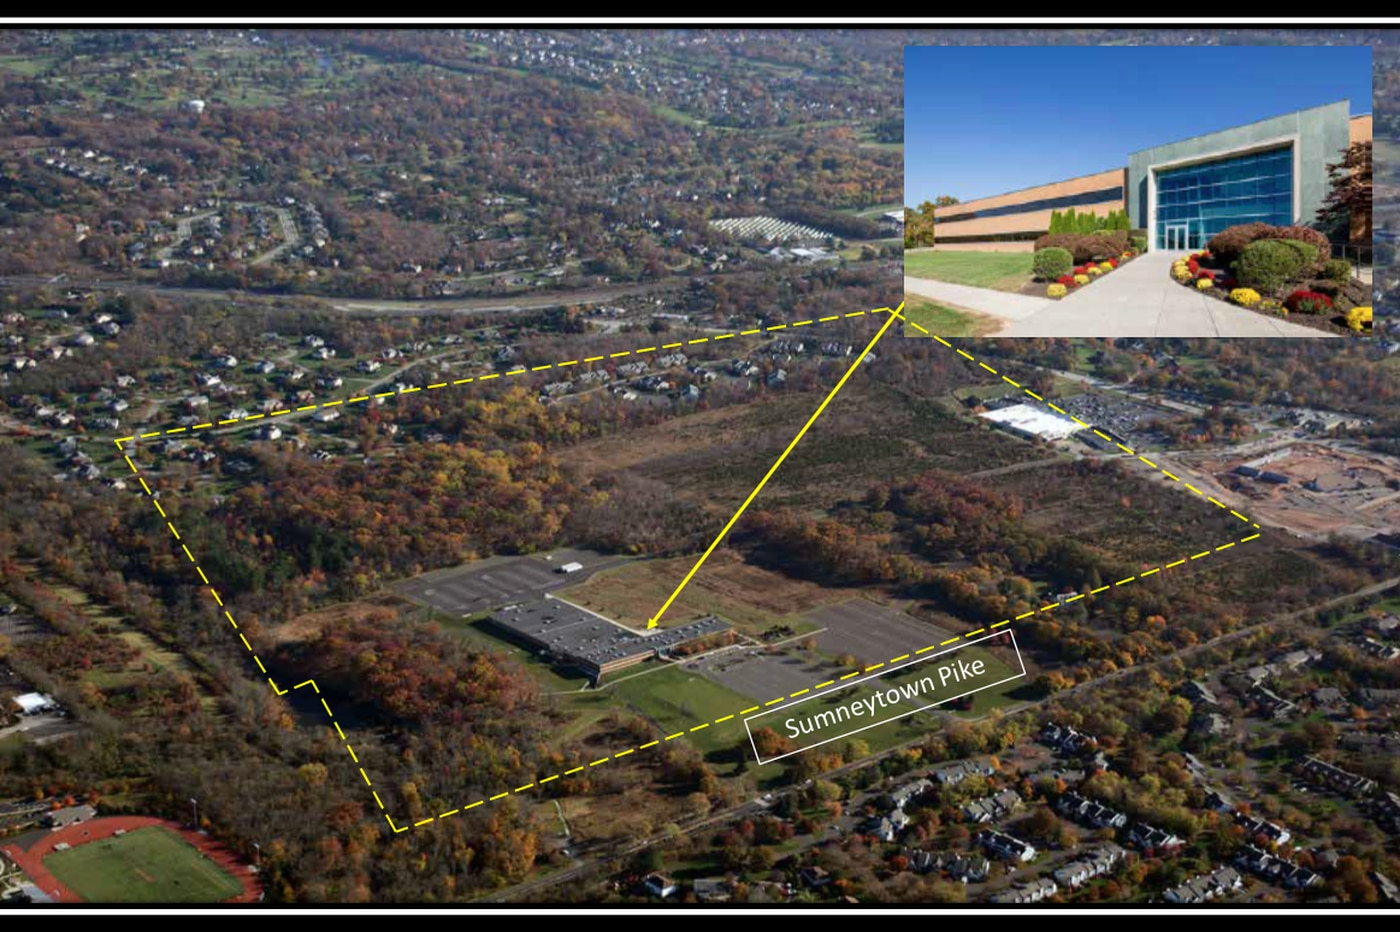 Gwynedd Mercy University buys Merck property, doubles size of campus